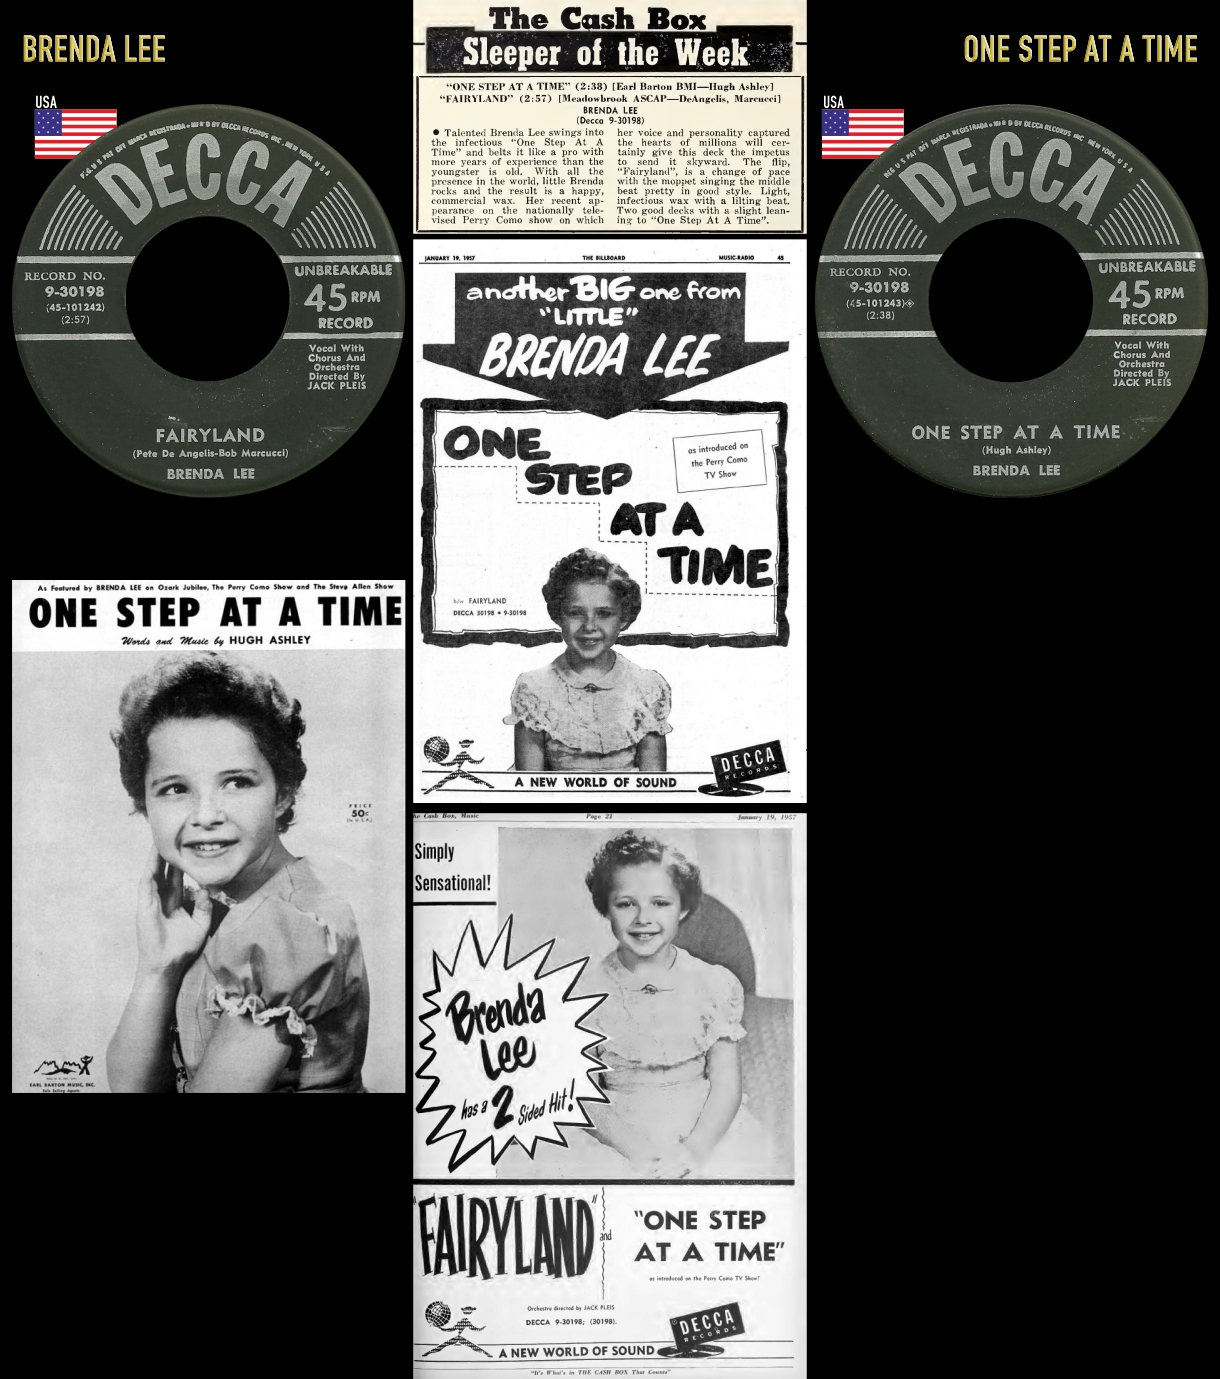 570302_Brenda Lee_One Step At A Time_Fairyland